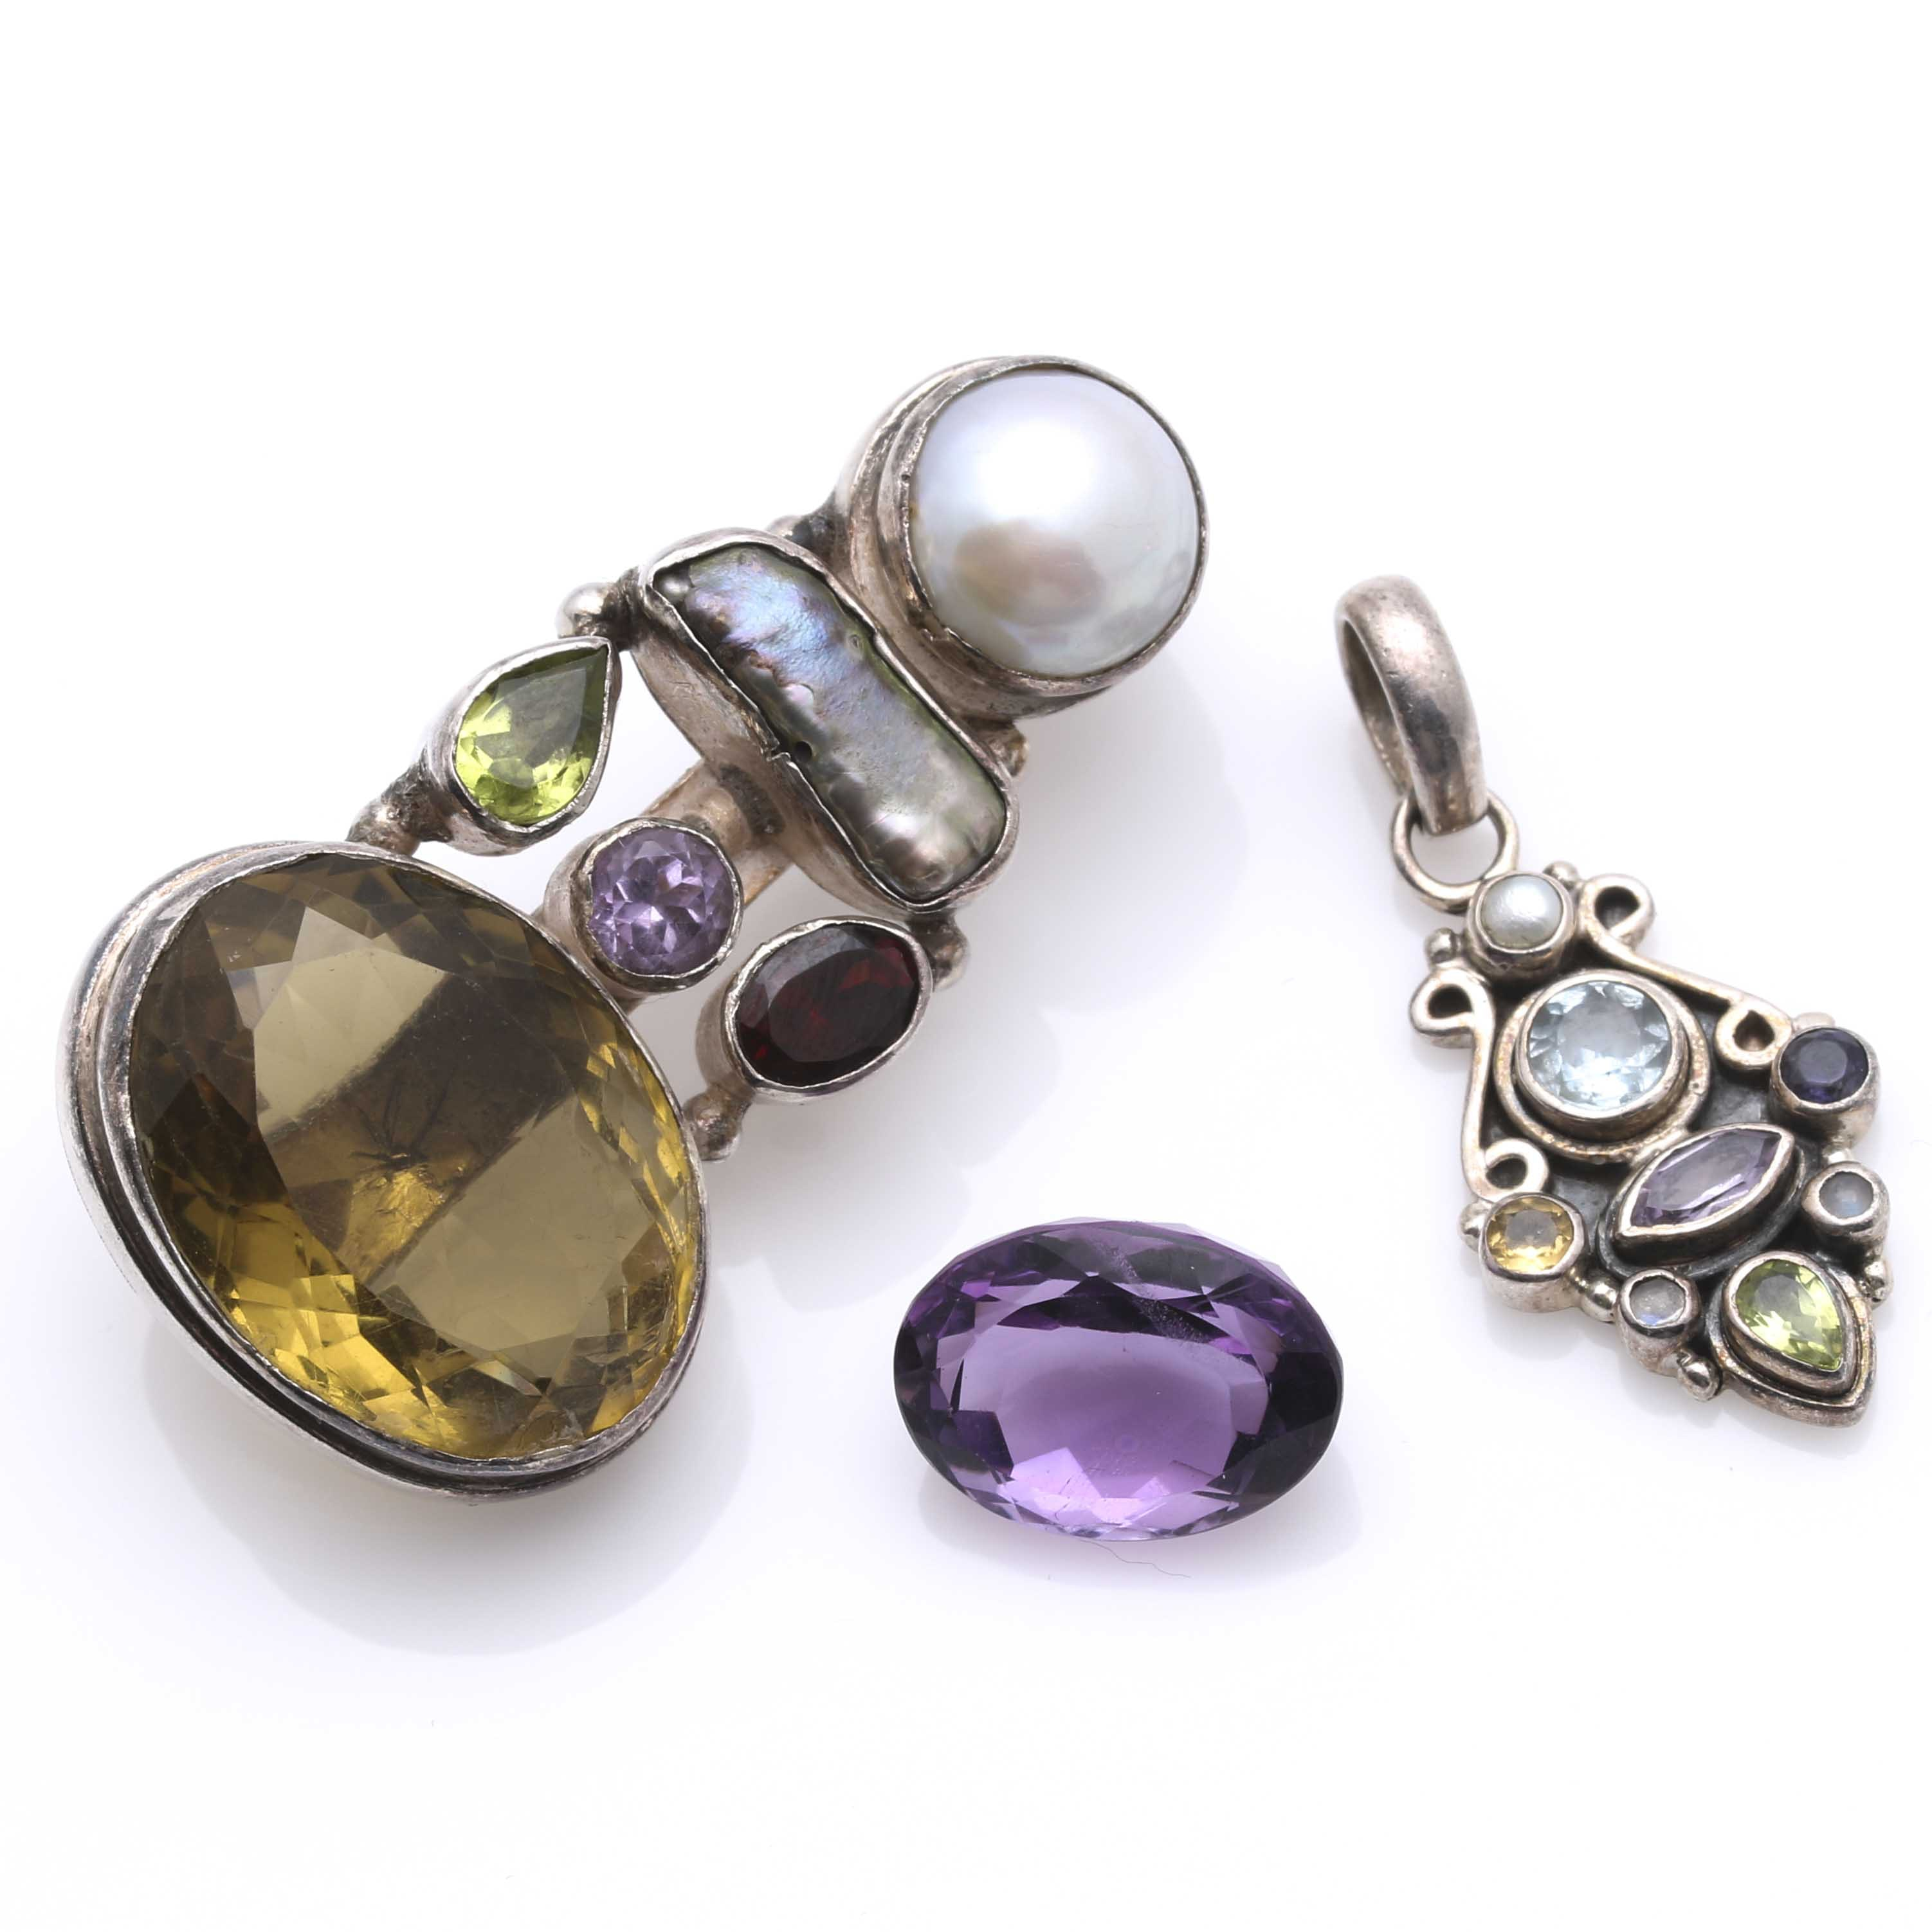 Sterling Silver Pearl and Gemstone Pendants and Loose Amethyst Gemstone